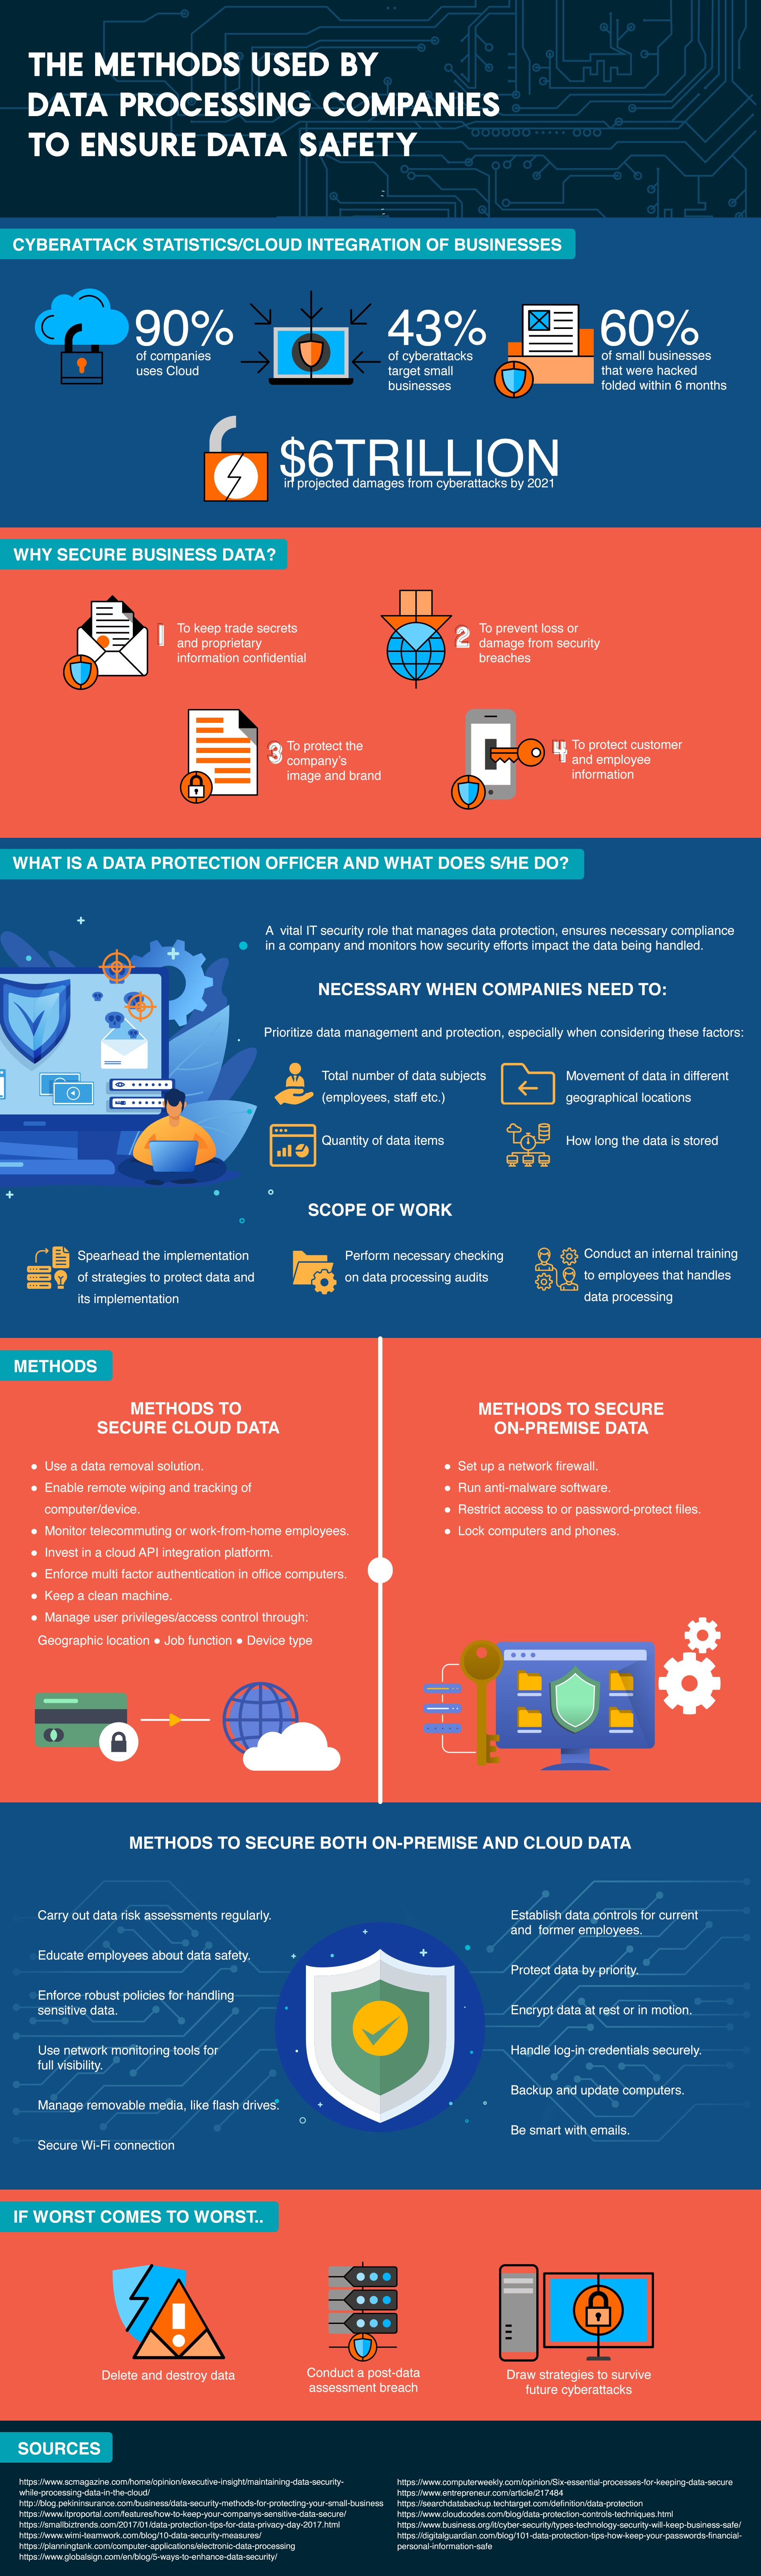 The Methods Used by Data Processing Companies to Ensure Data Safety Infographic